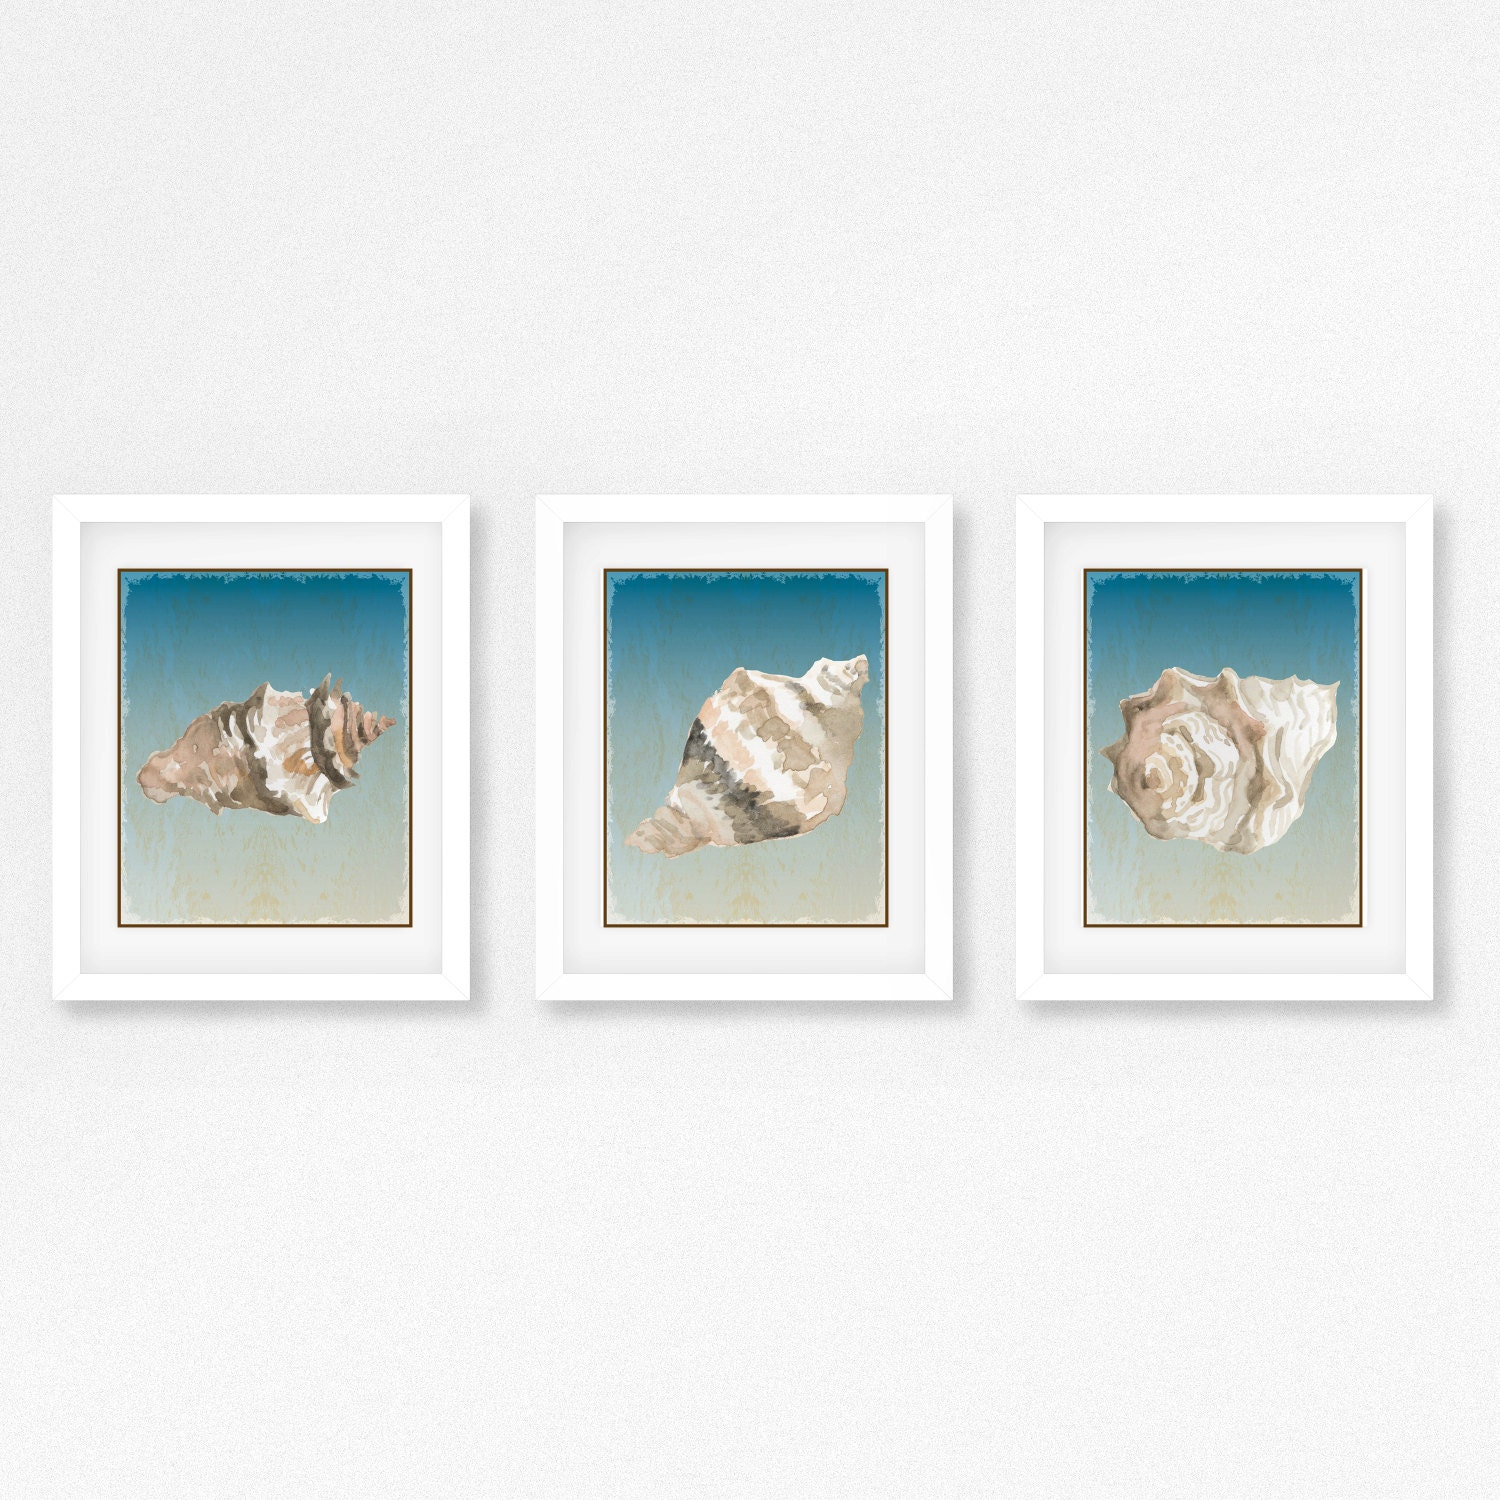 3 framed and matted seashell prints free shipping for 3 by 3 prints